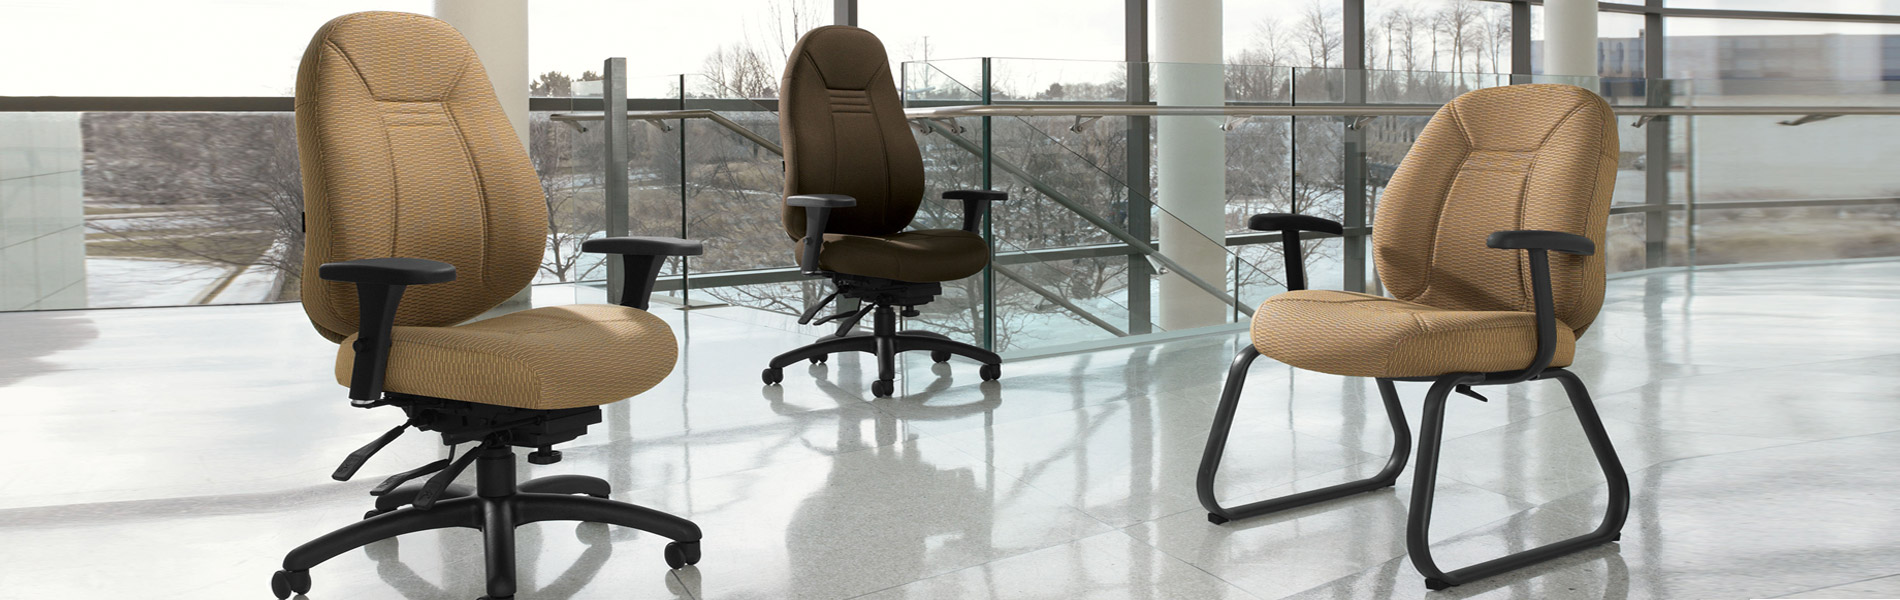 Big And Tall Office Chairs Big And Tall Desk Chairs 500 Lb Capacity Office Chair Big And Tall Executive Office Chairs Big And Tall Mesh Office Chairs Heavy Duty Office Chairs